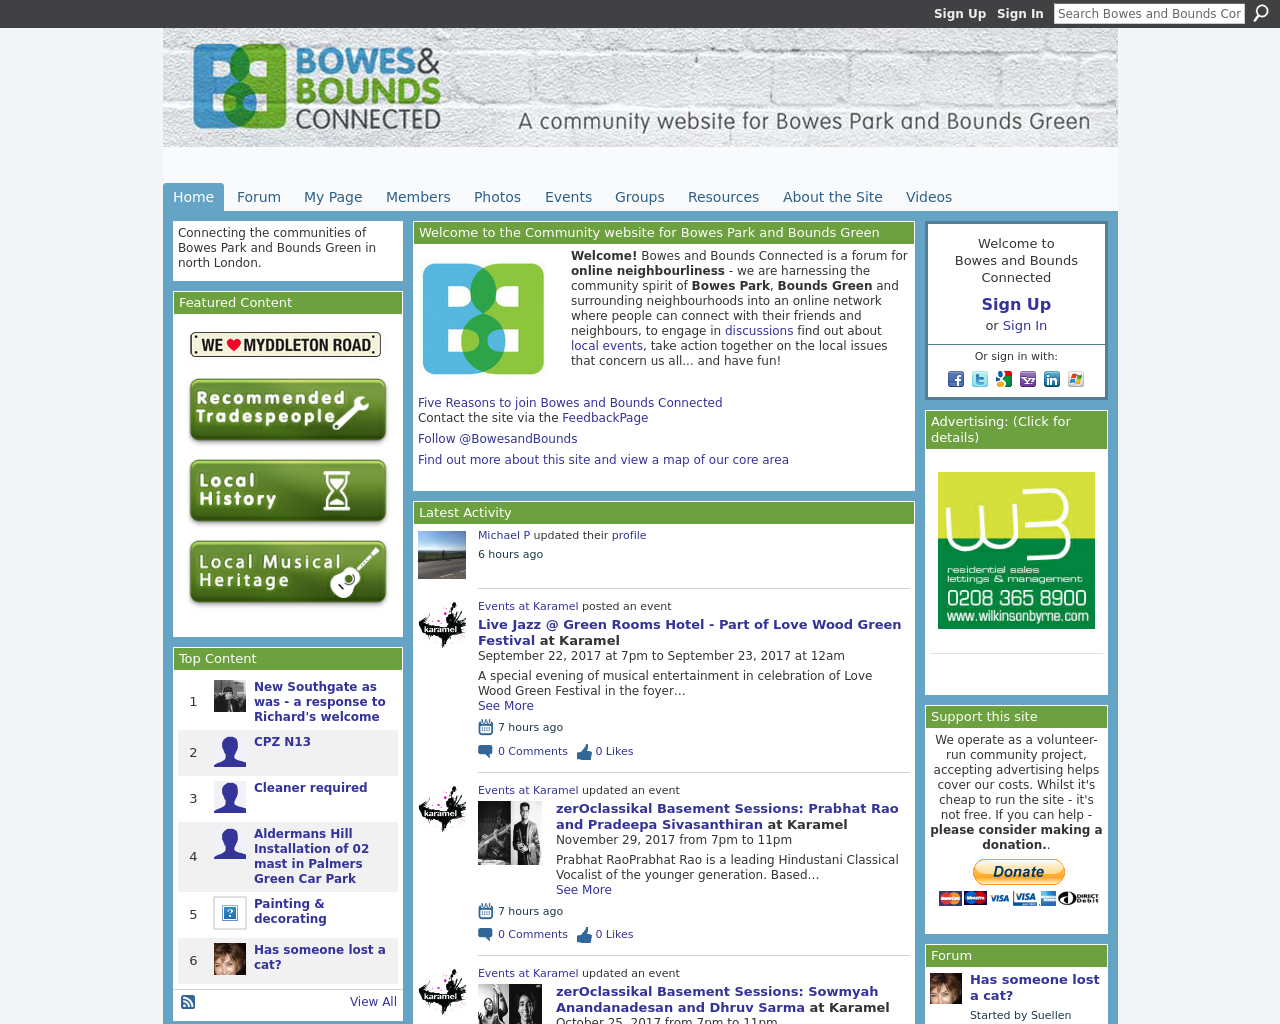 Bowes-and-Bounds-Advertising-Reviews-Pricing